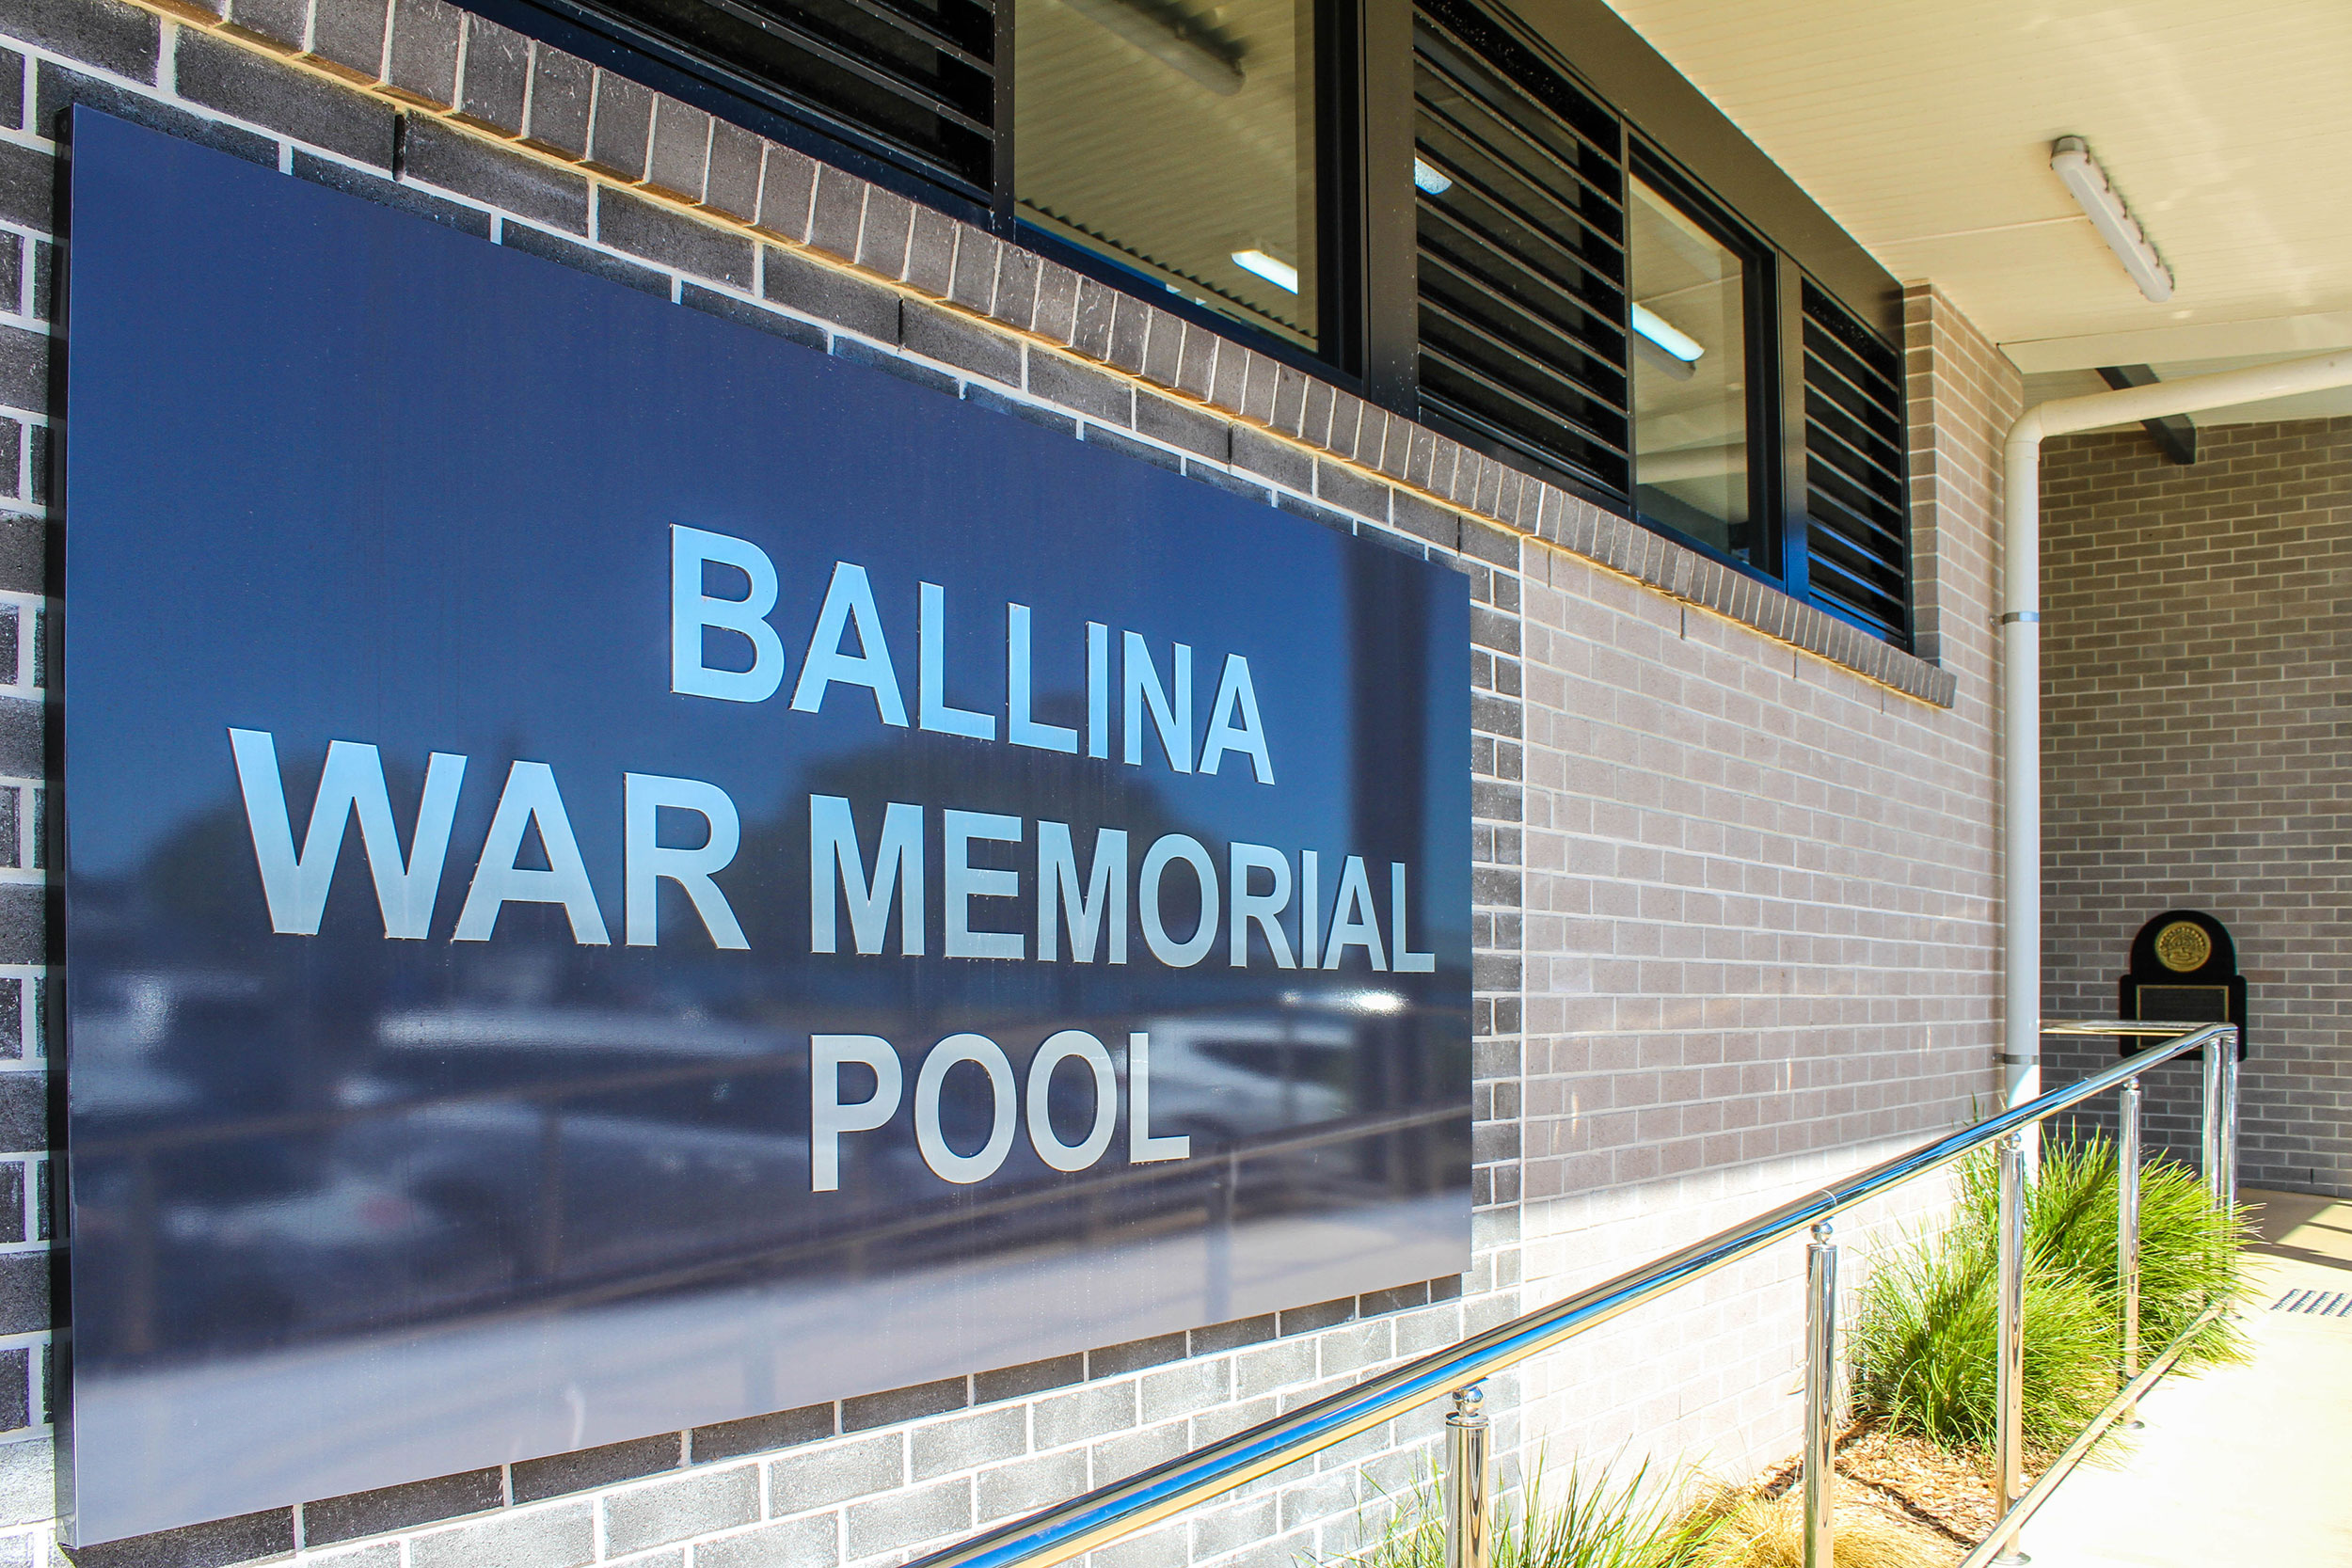 Name : Ballina War Memorial Pool – NSW